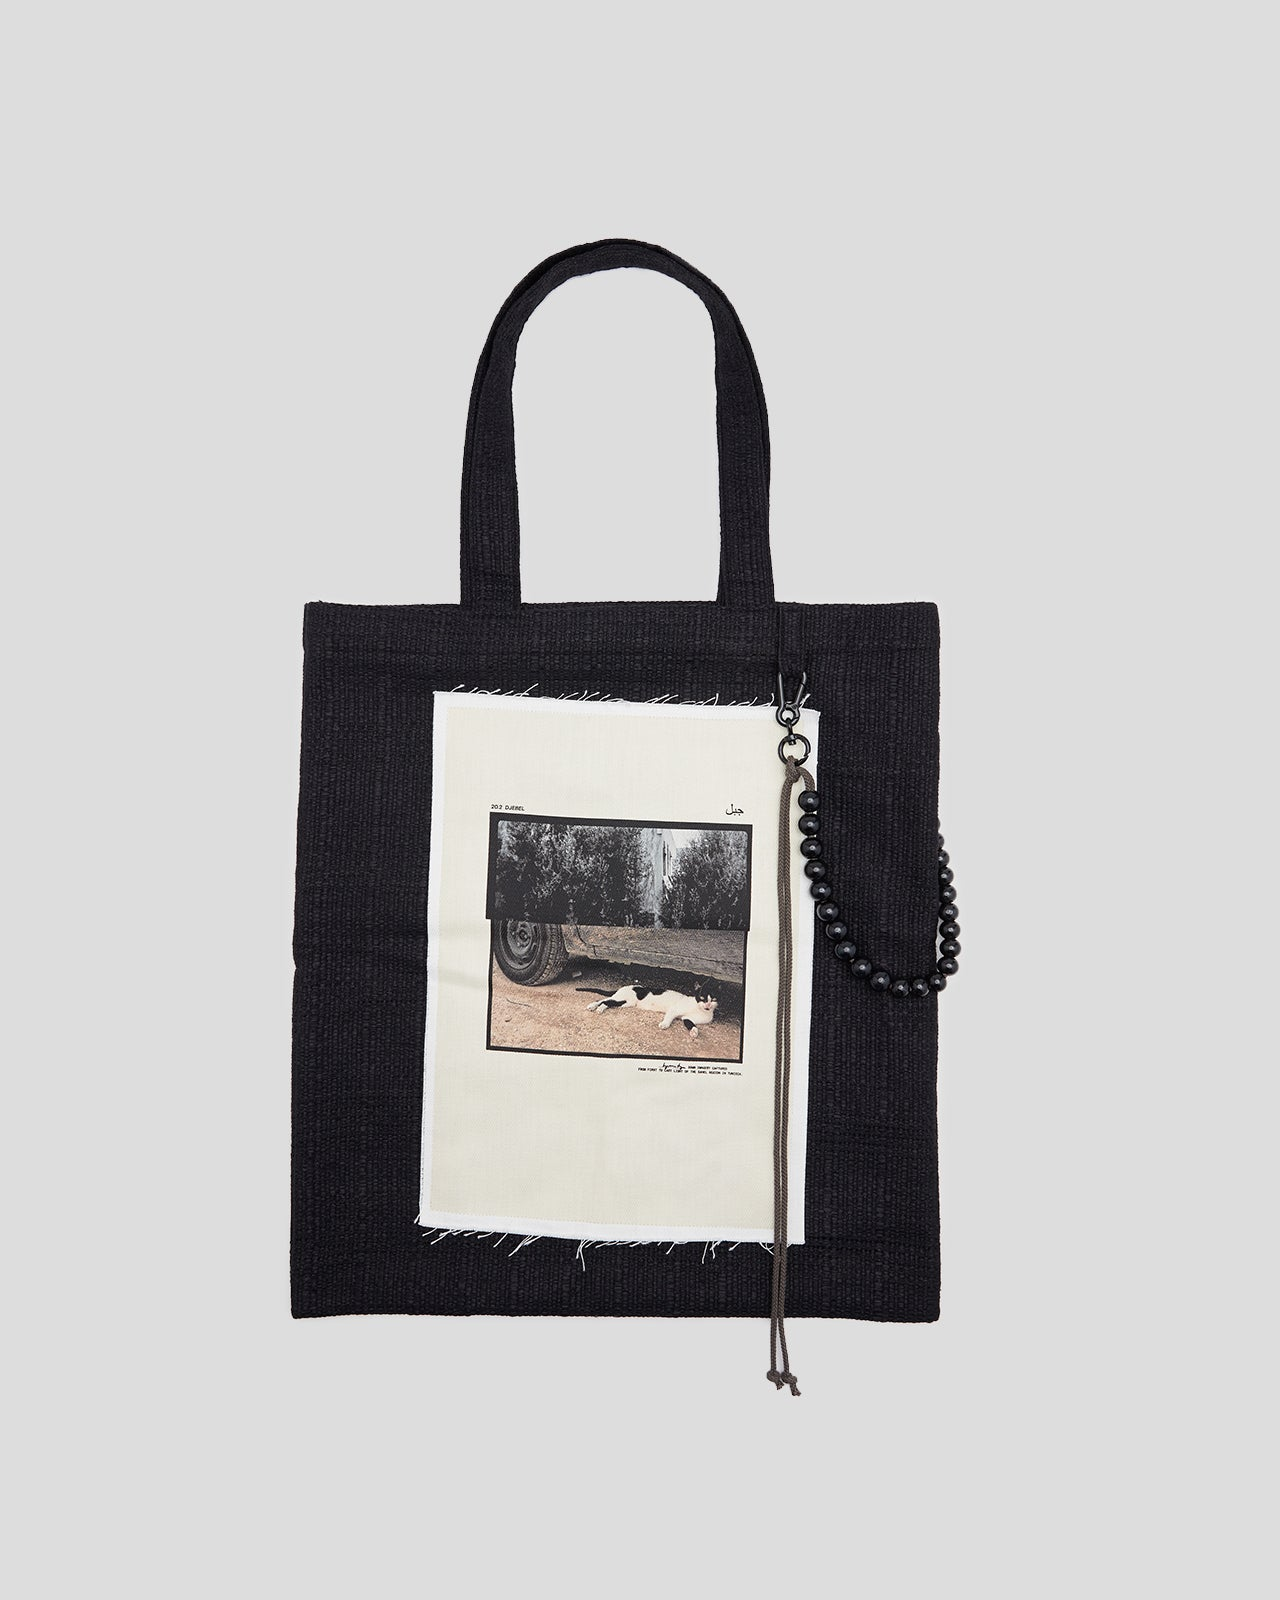 Cat Large Tote Bag in Black